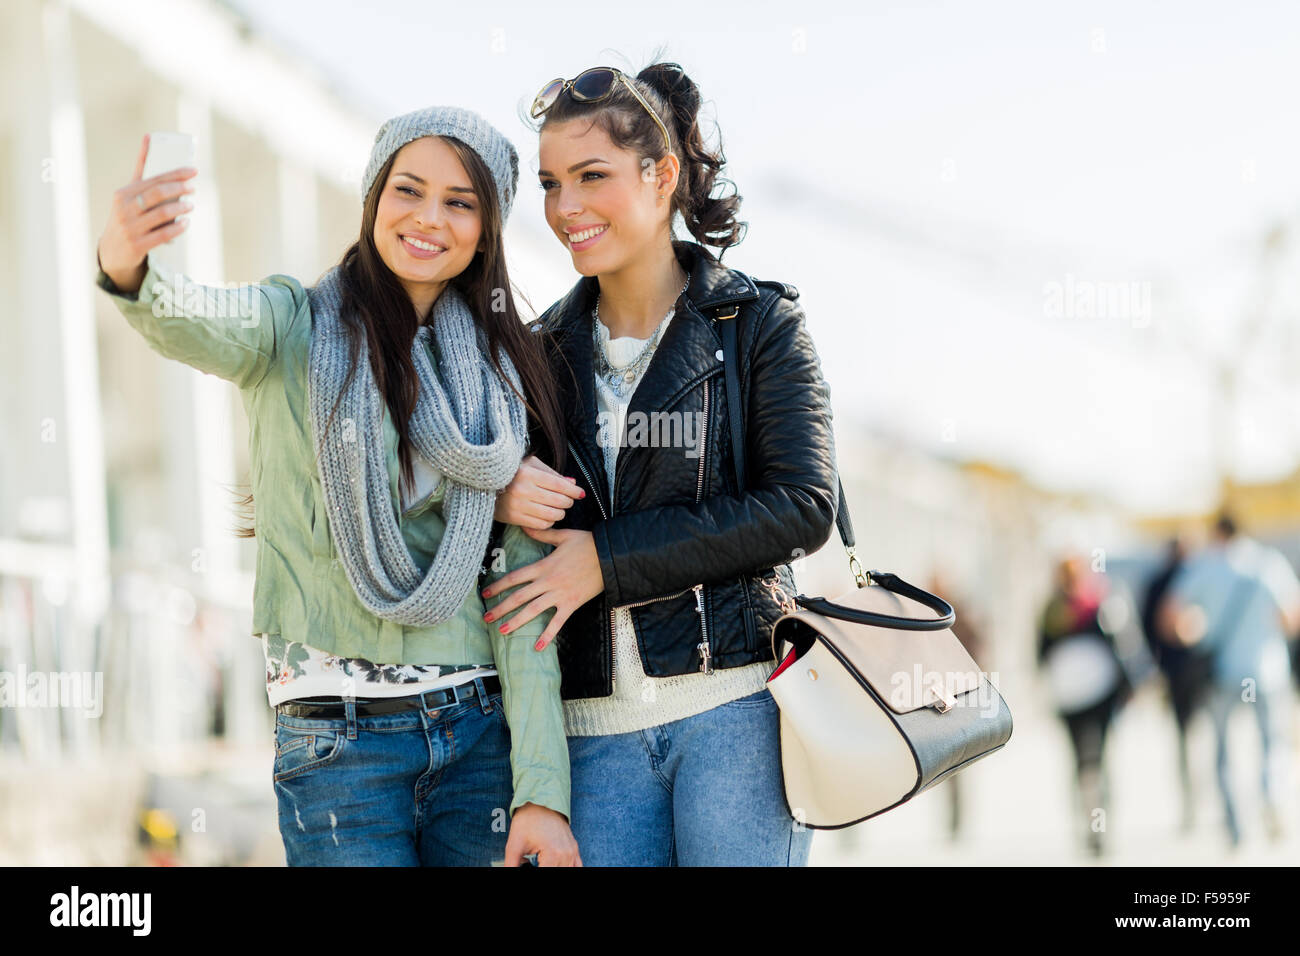 Two young women taking a selfie of themselves - Stock Image